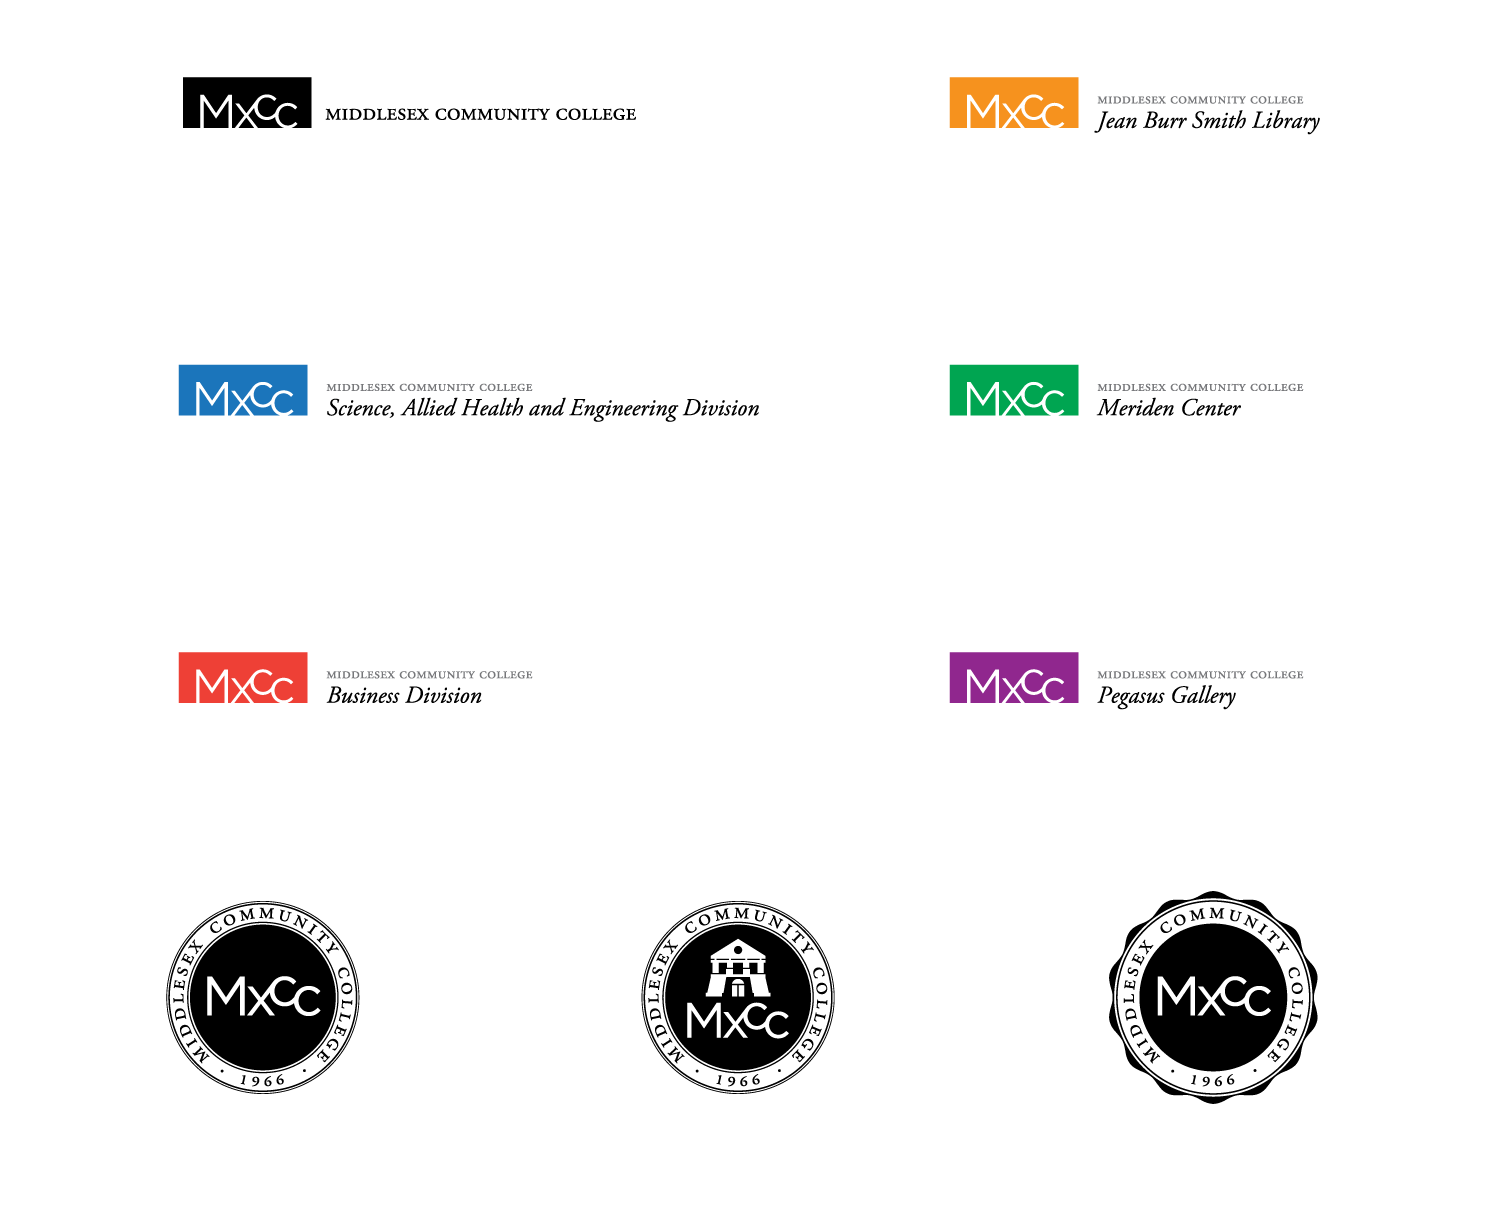 Variations of the MxCC logo